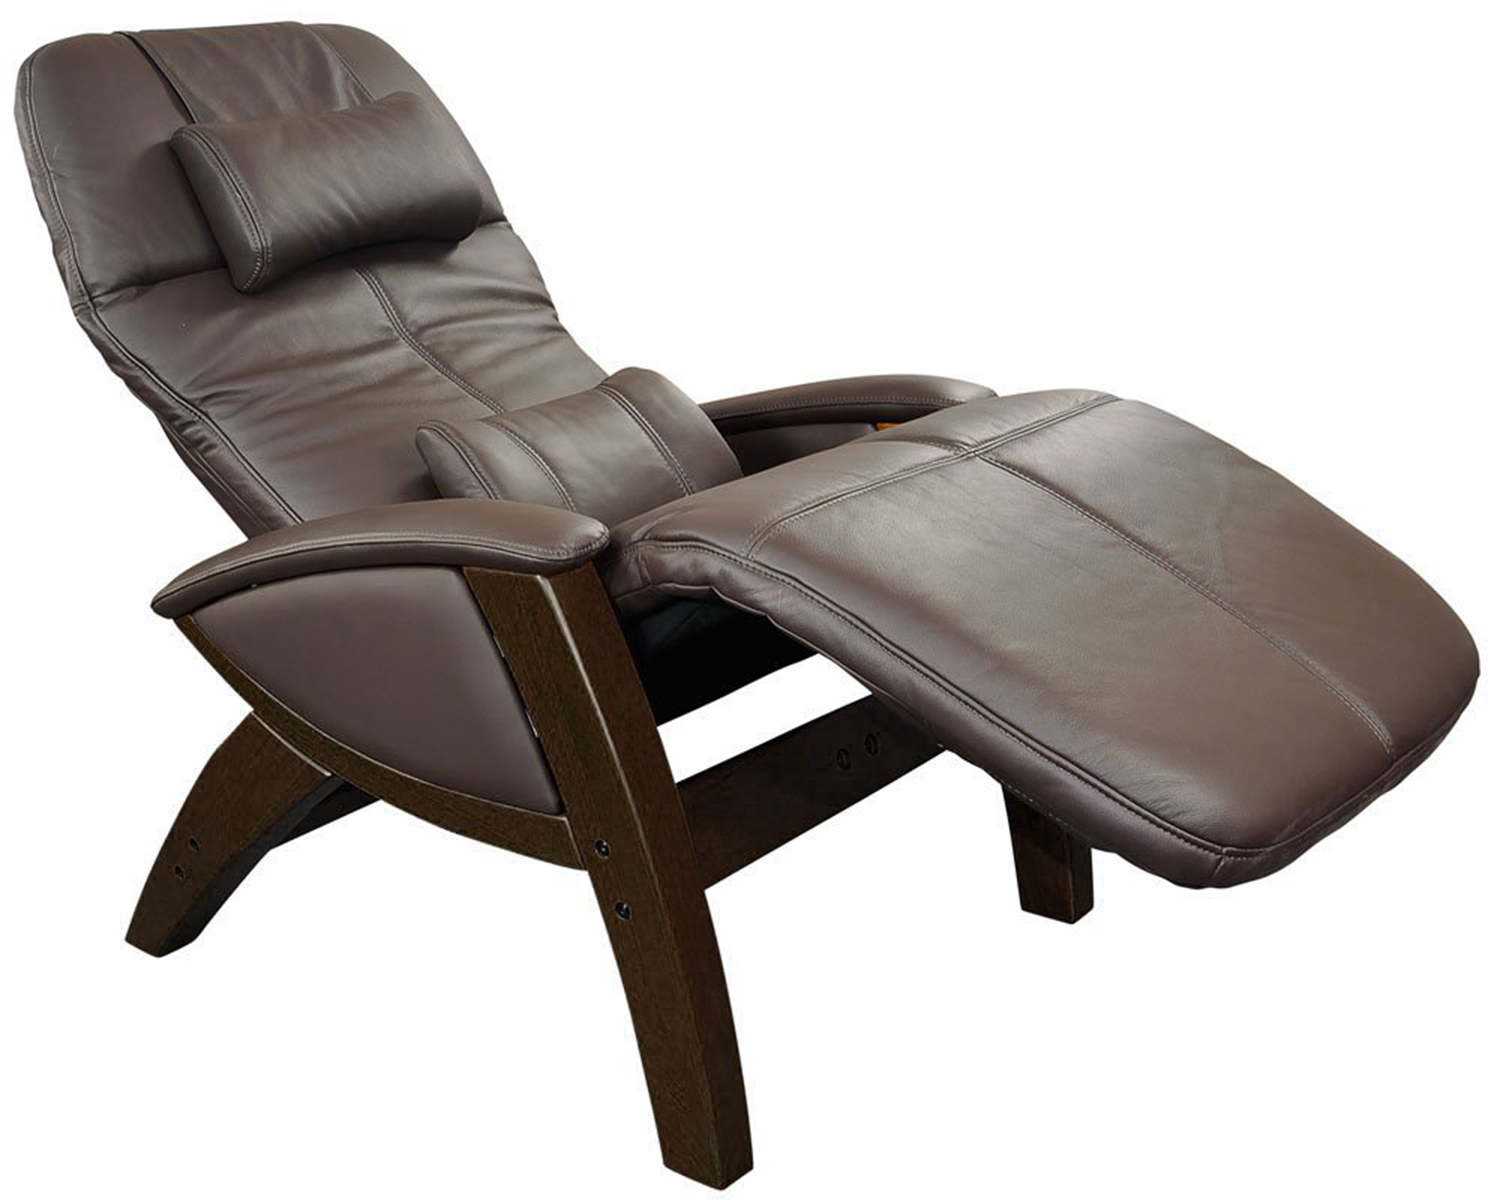 Svago sv 400 sv 405 lusso zero gravity recliner chair for Chair chair chair